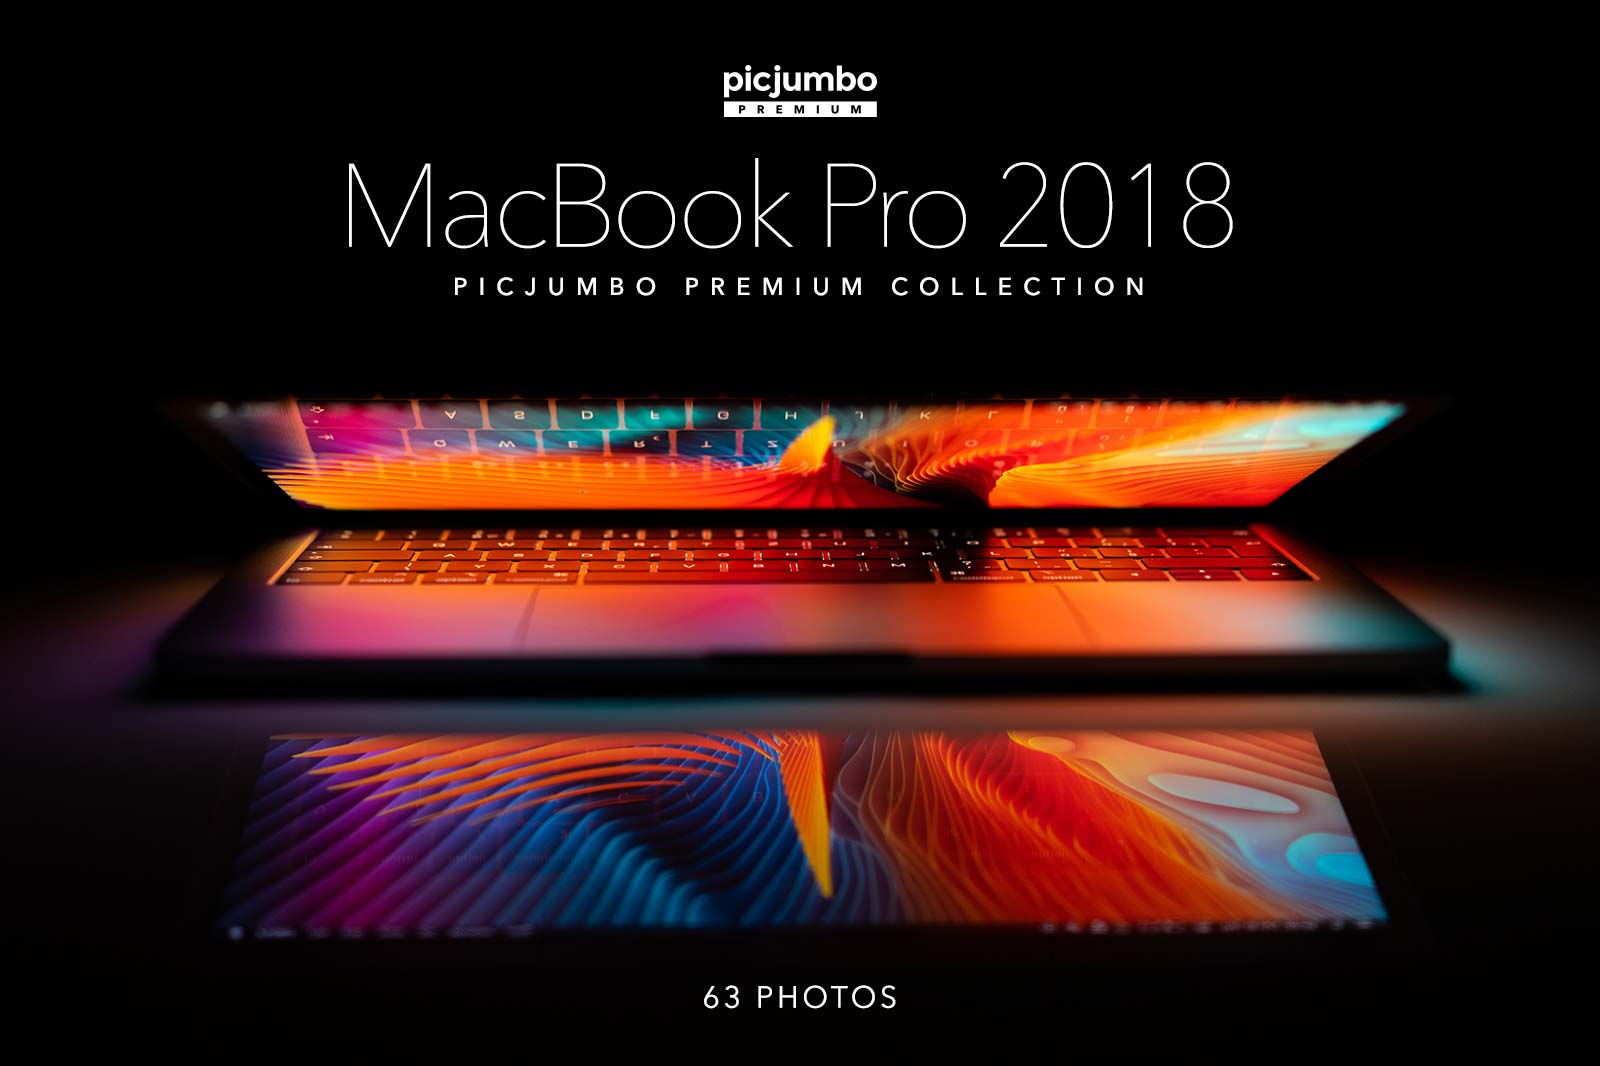 MacBook Pro 2018 — Join PREMIUM and get instant access to all photos from this collection!